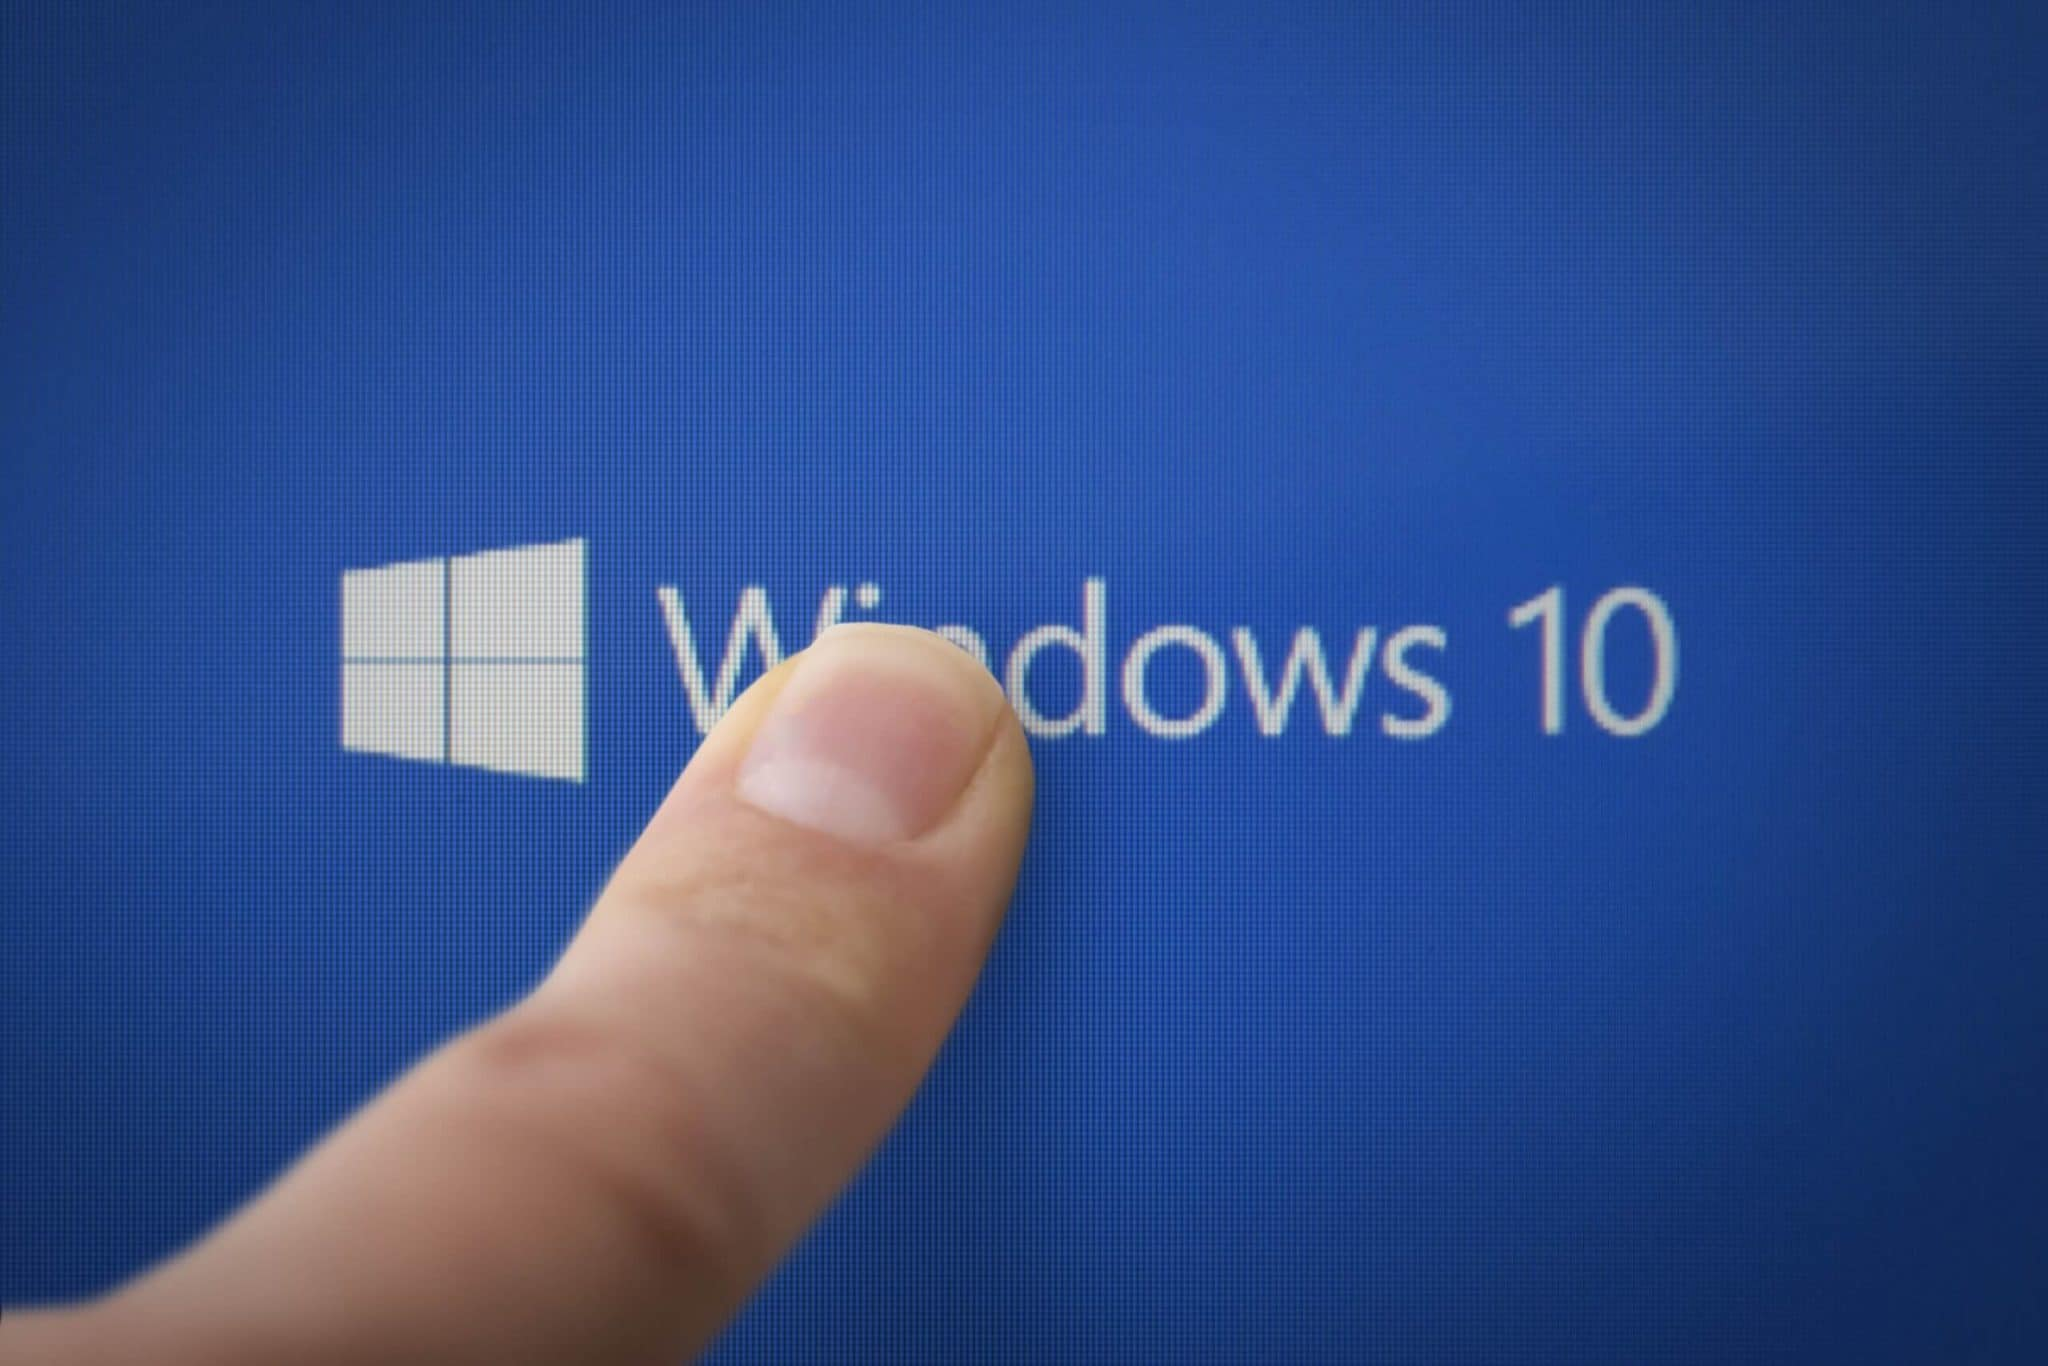 Photo of Windows 7 is no more, How to Upgrade Windows 10 For Free?